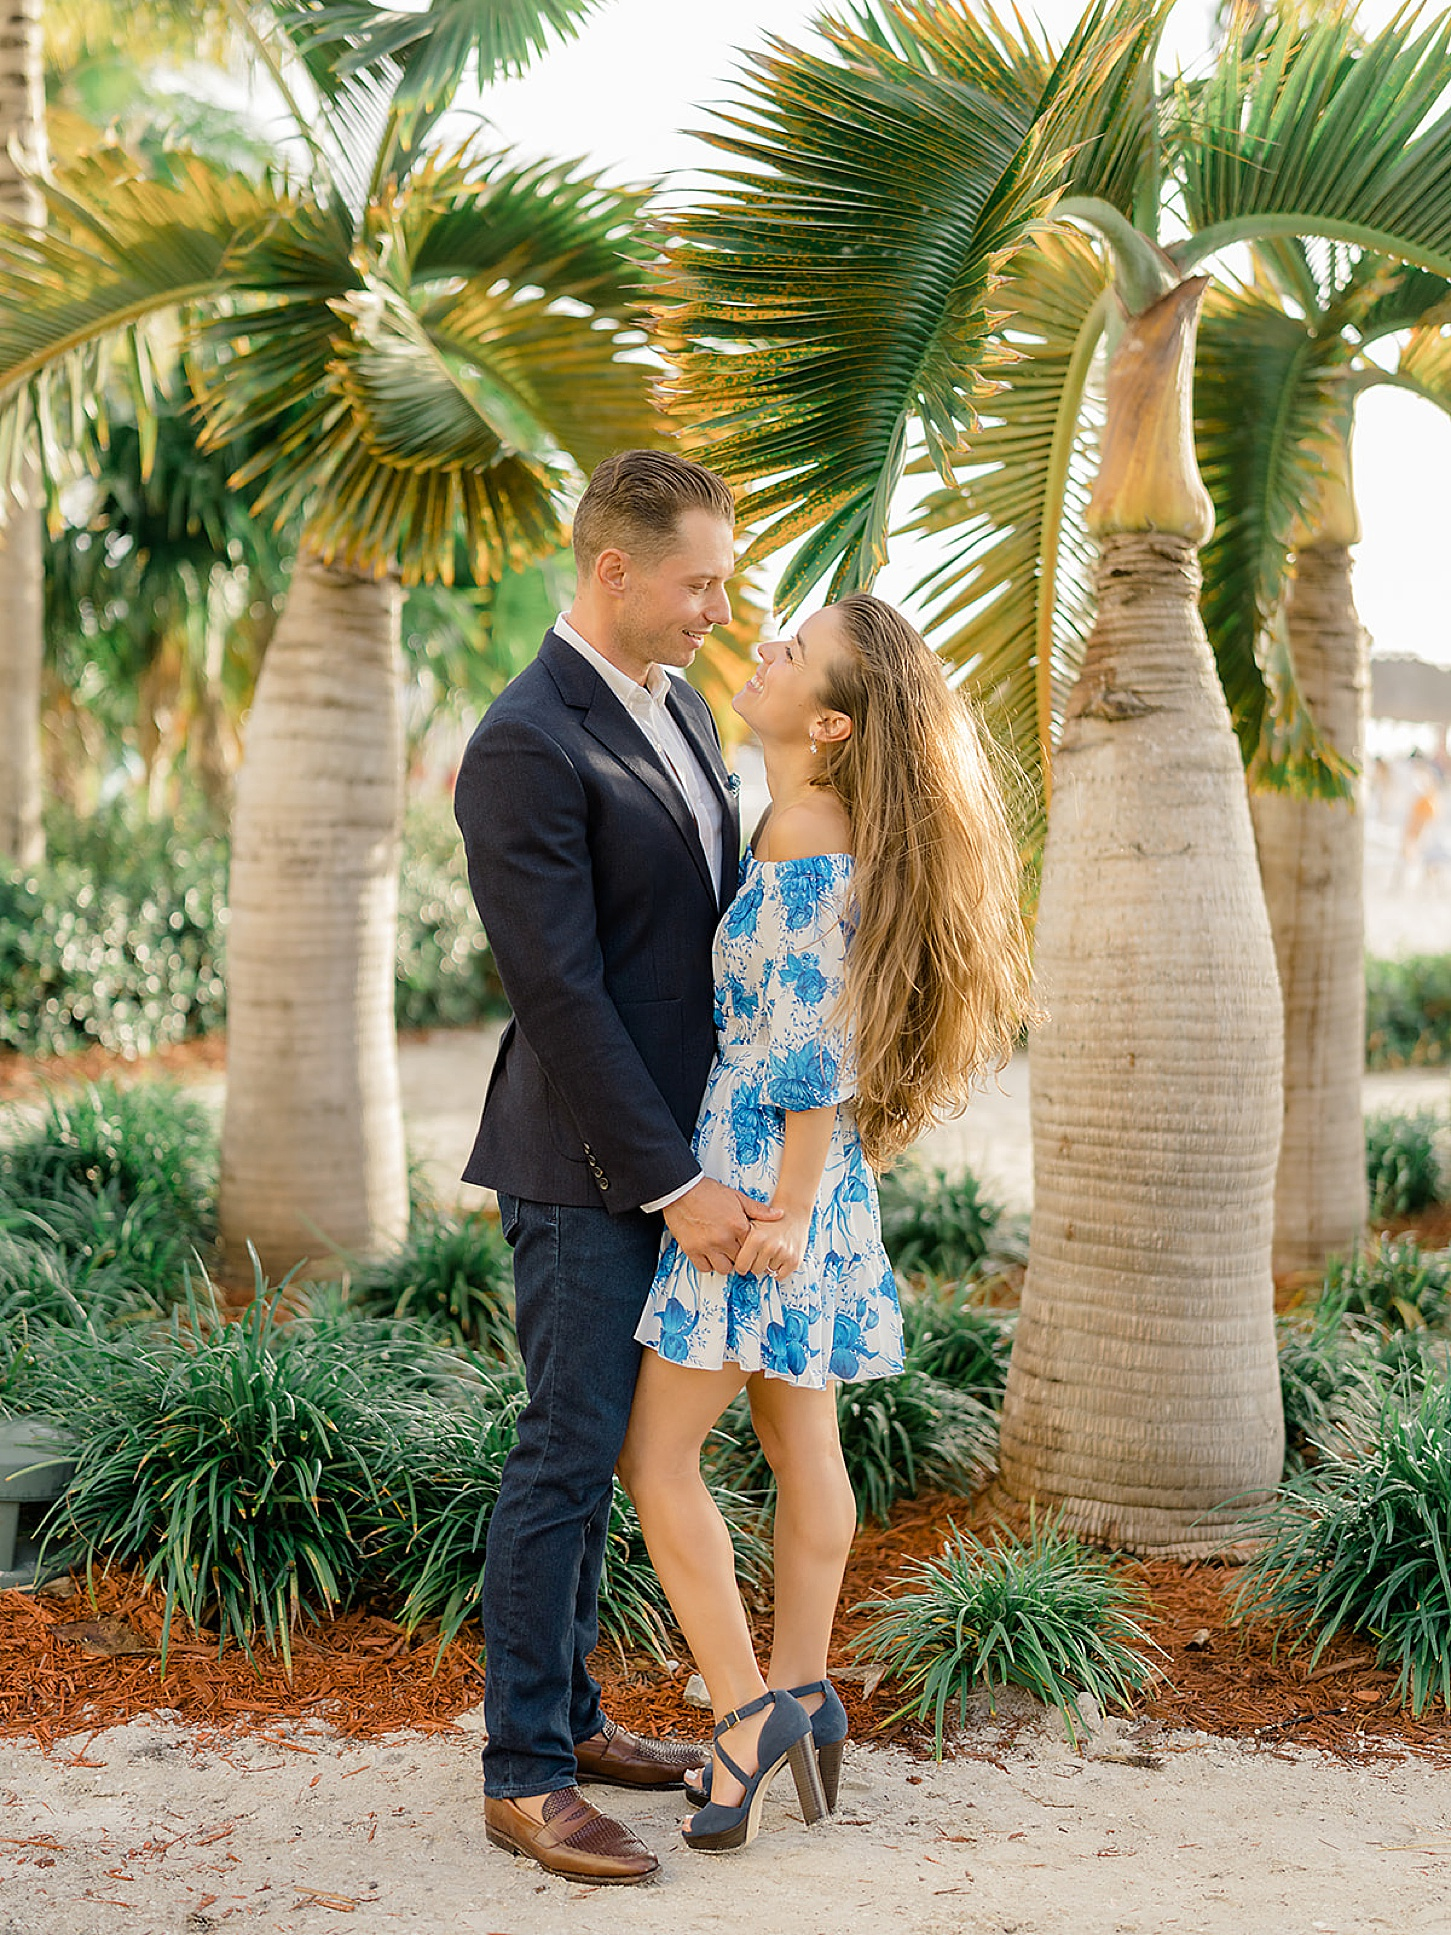 Palm Beach Florida Engagement Photography by Magdalena Studios Lyn and Paul 0010